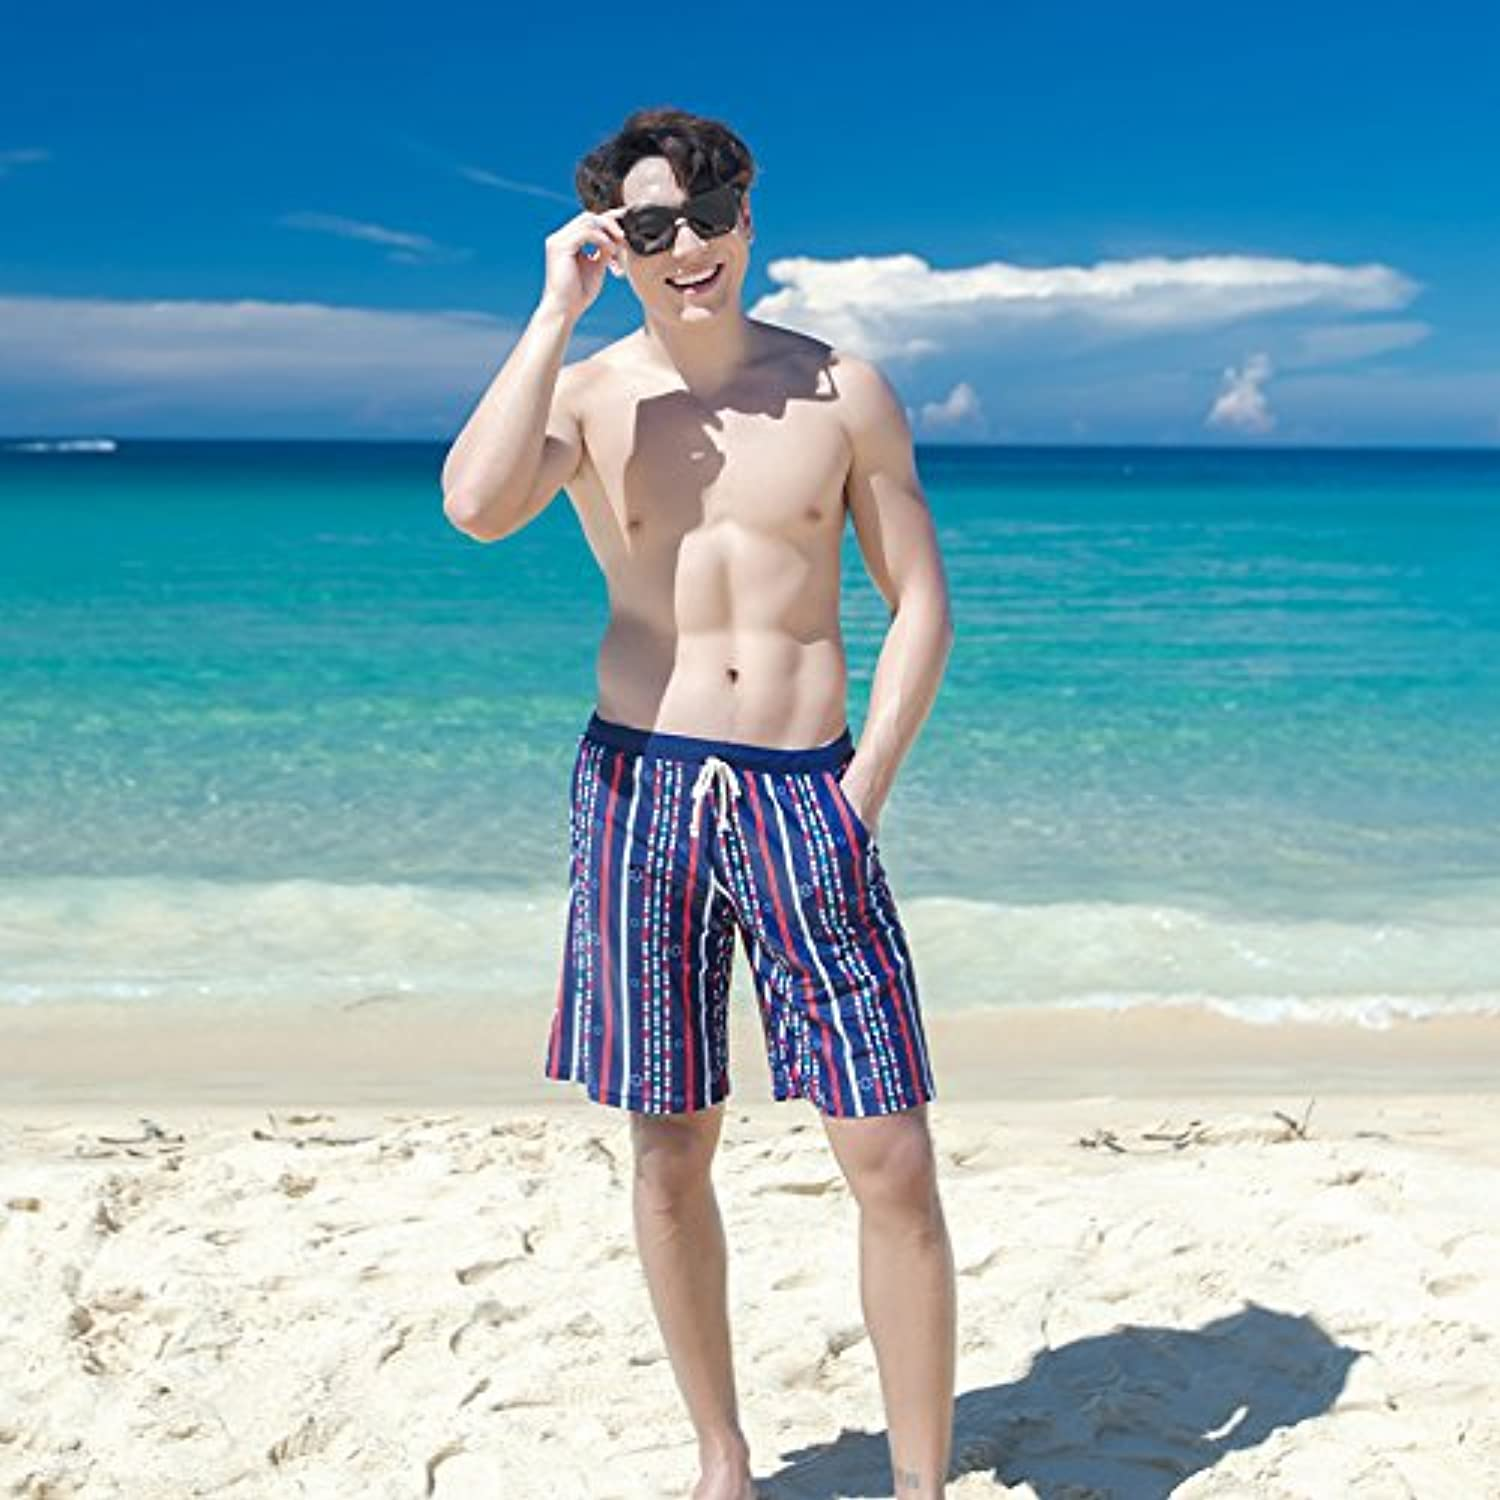 HAIYOUVK Couple Siamese skirt-style steel plate gather + men's swimming trunks comfortable hot spring vacation beach